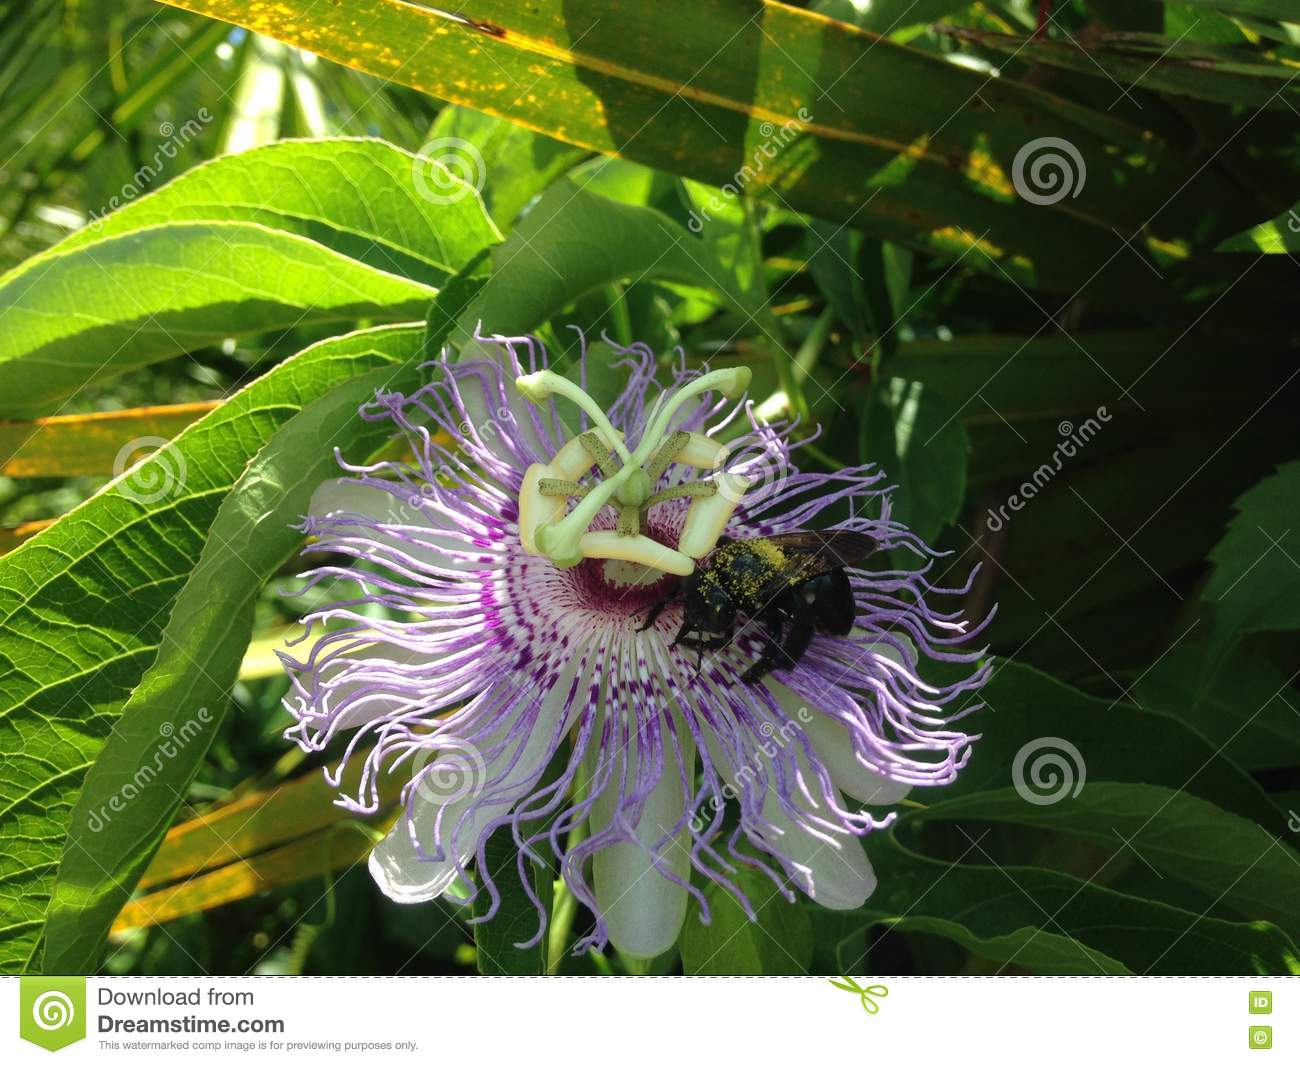 Anthophila (Bee) Sitting on Passiflora (Passion Flower) Plant Flower.